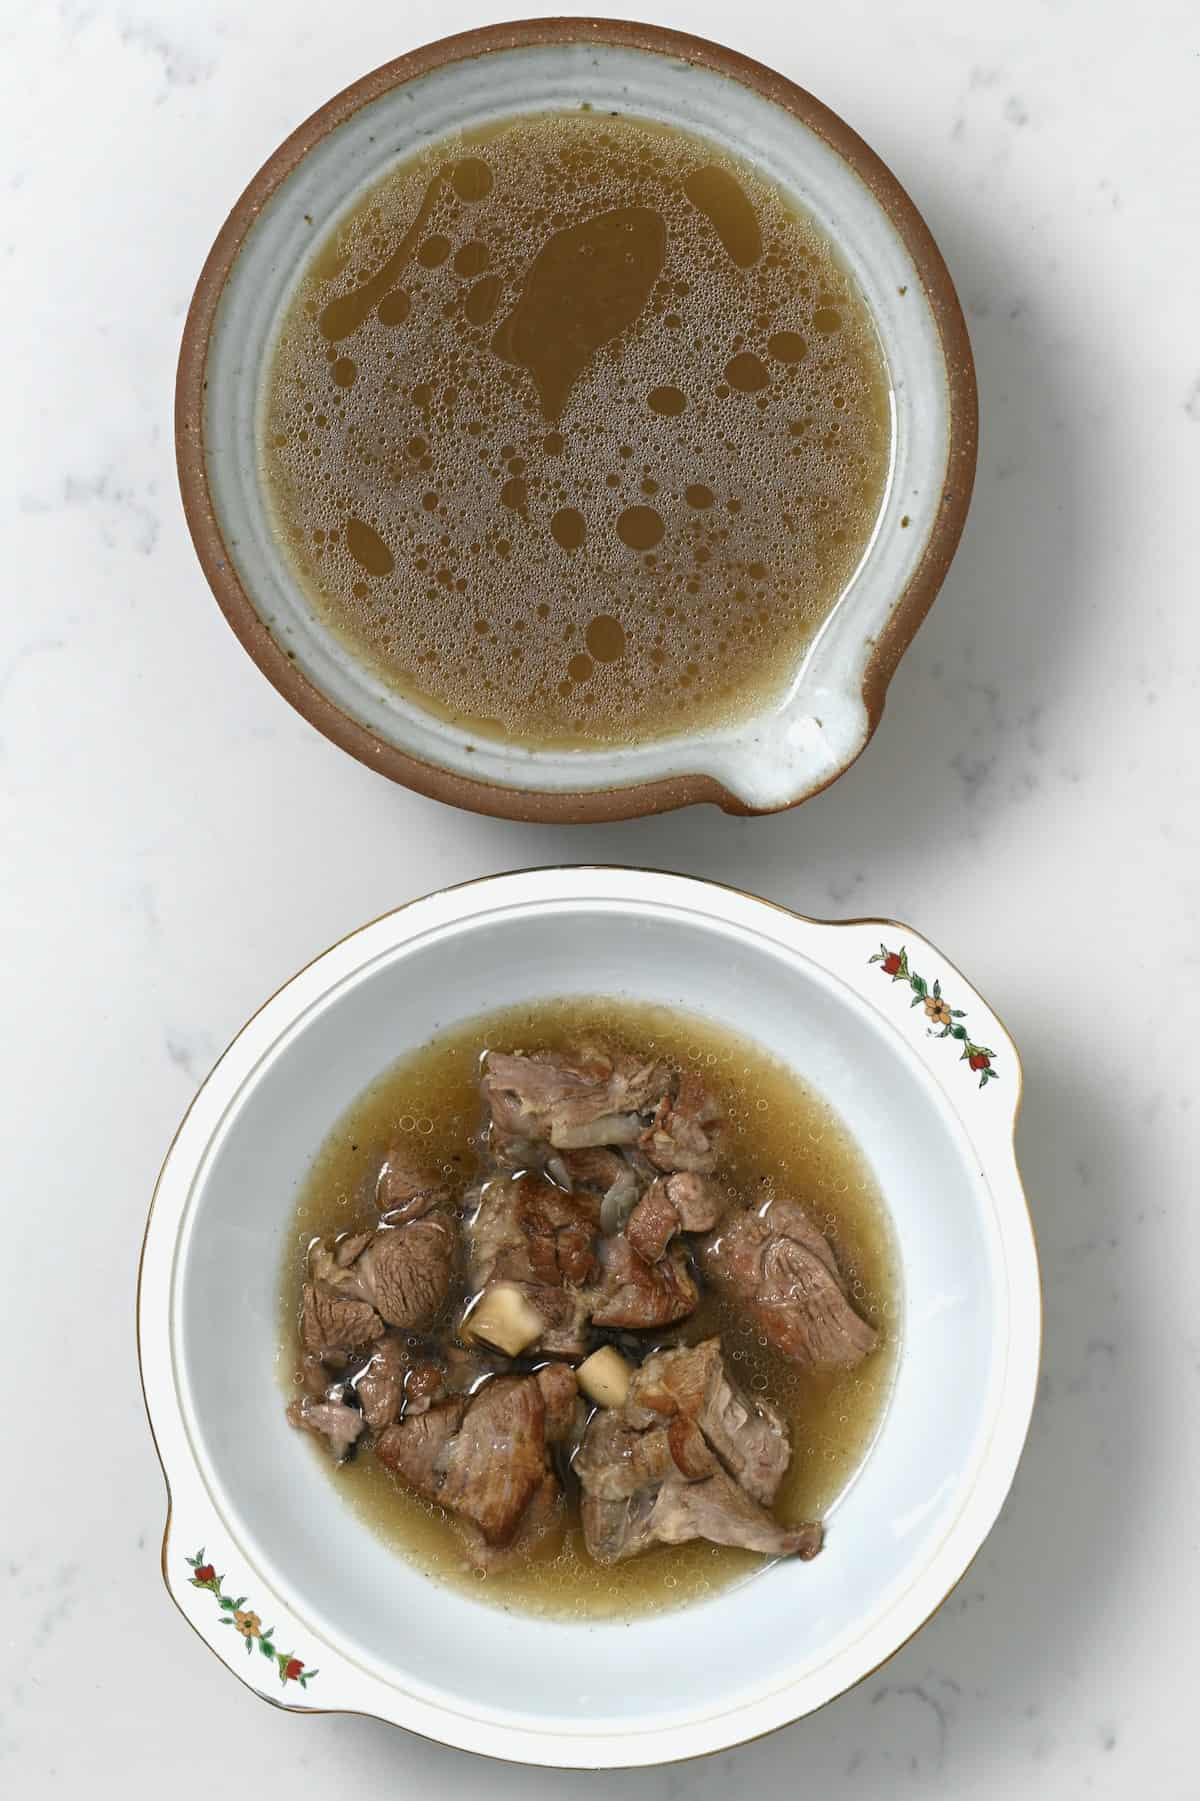 Homemade Beef broth in a bowl and beed ini a pot